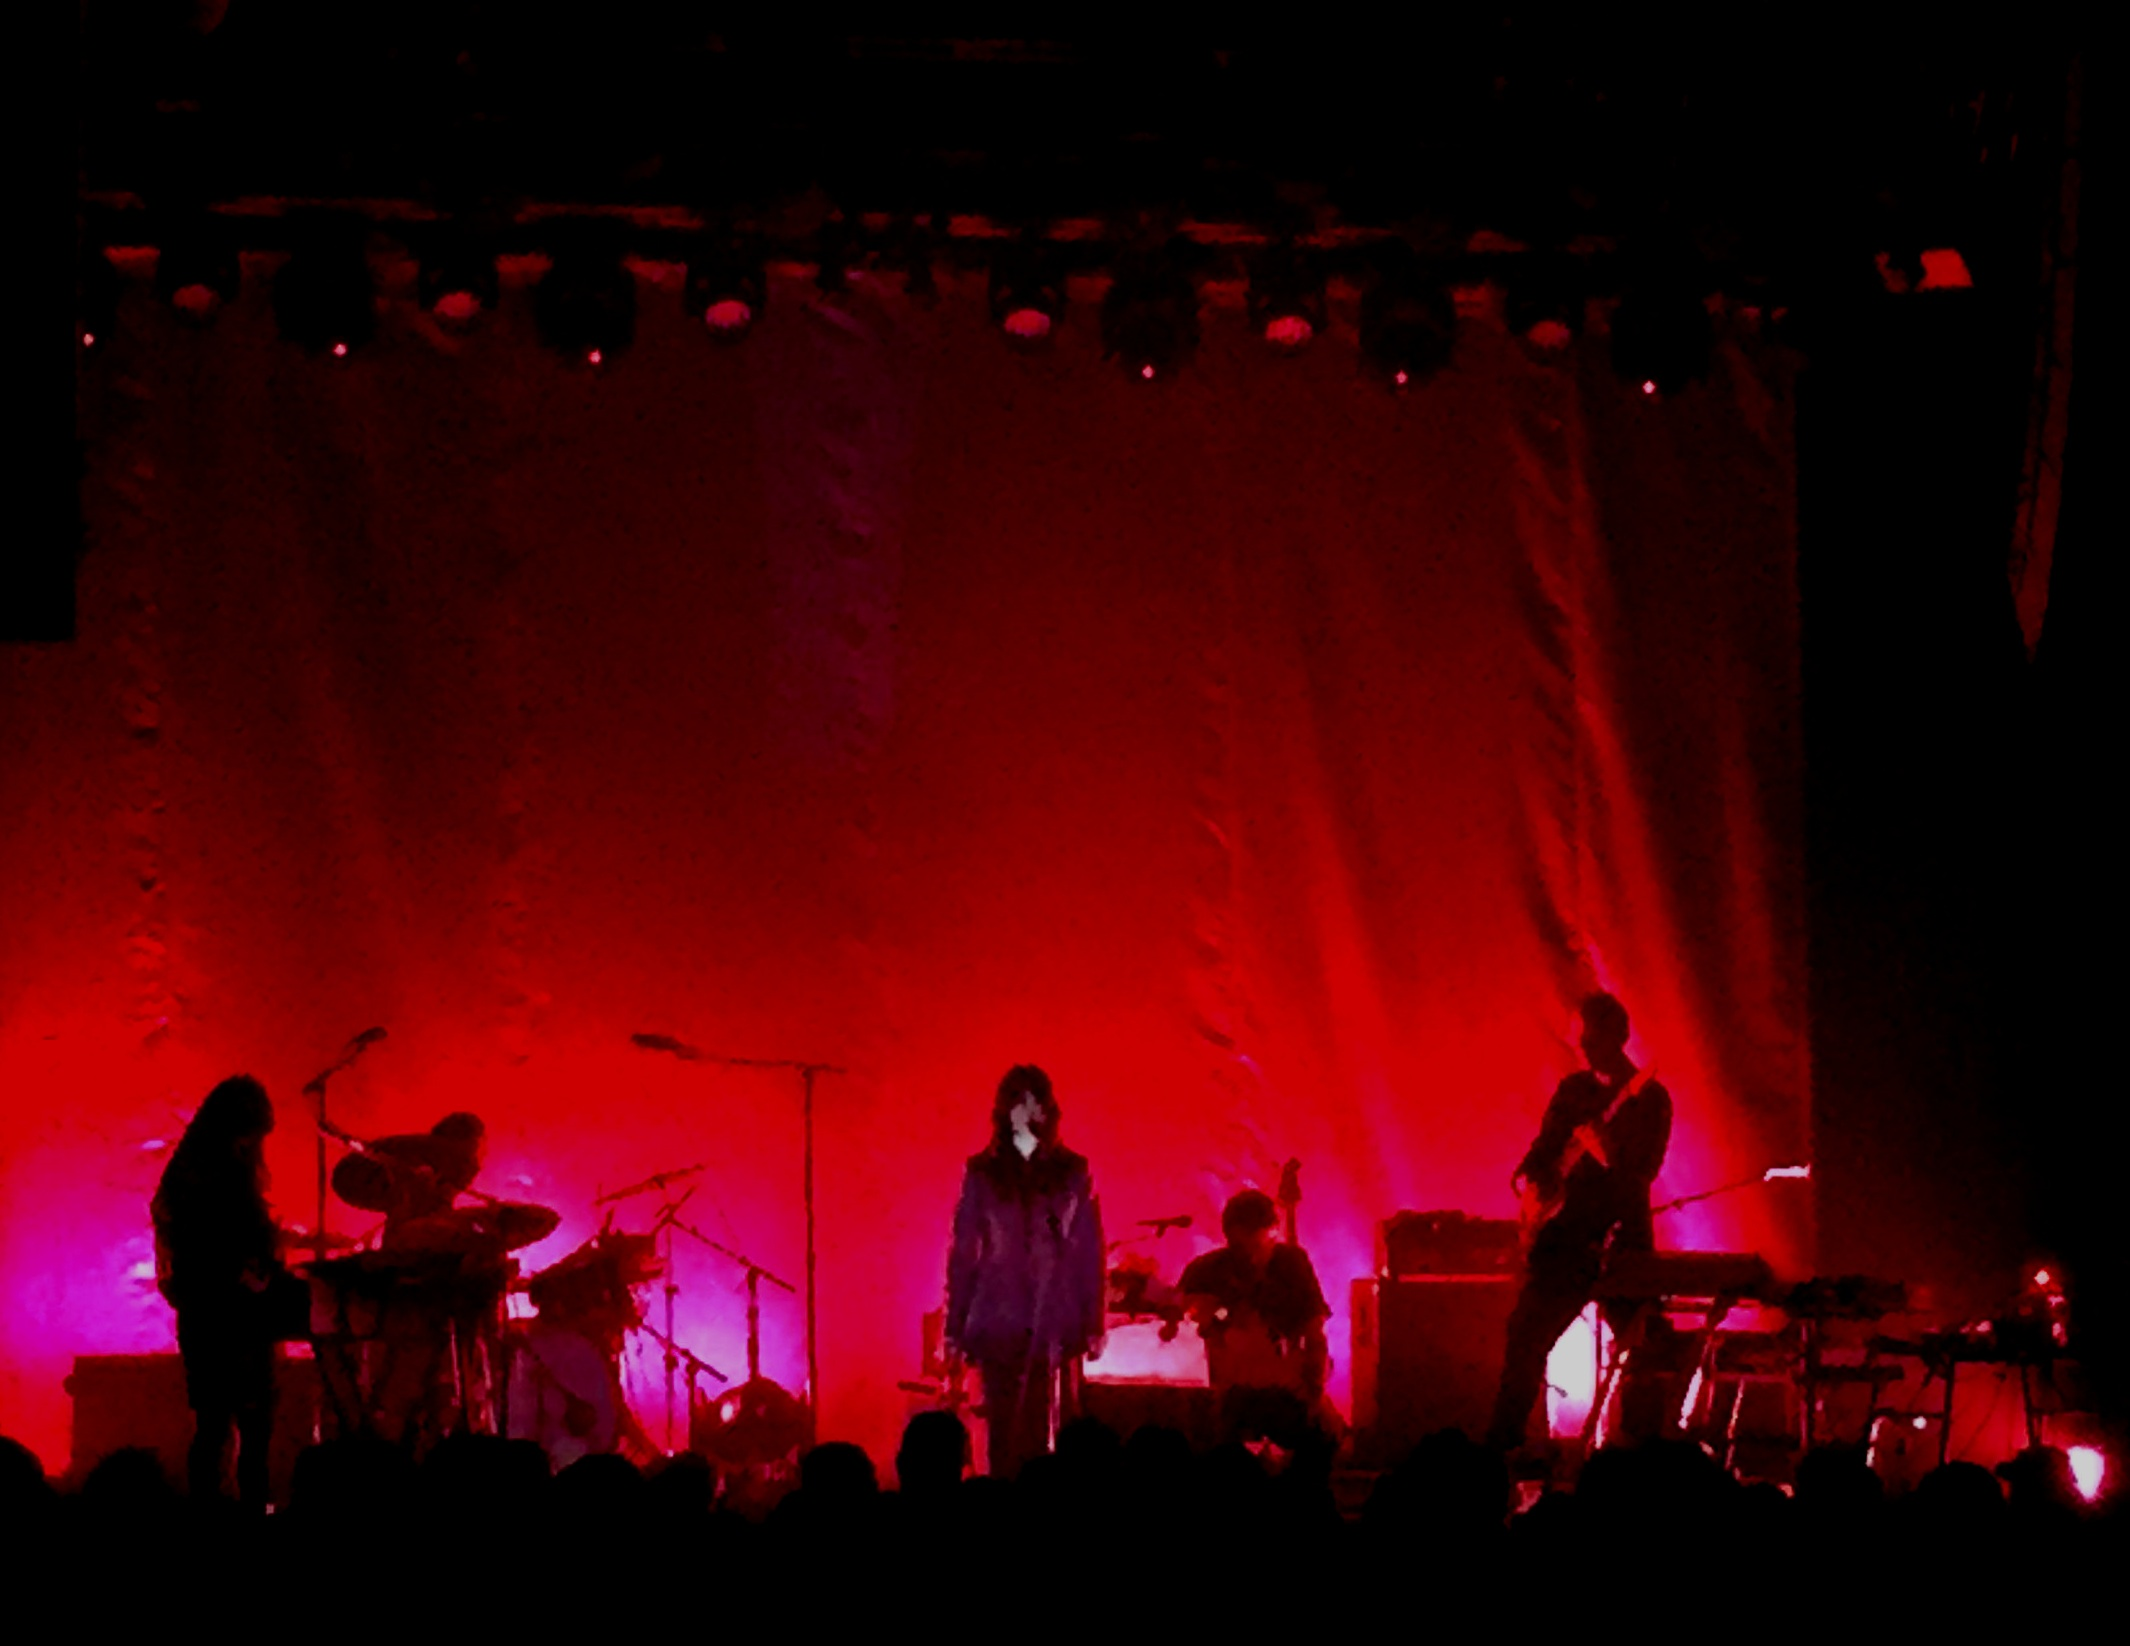 Sharon Van Etten puts on a powerful show for Union Transfer - February 7, 2019.